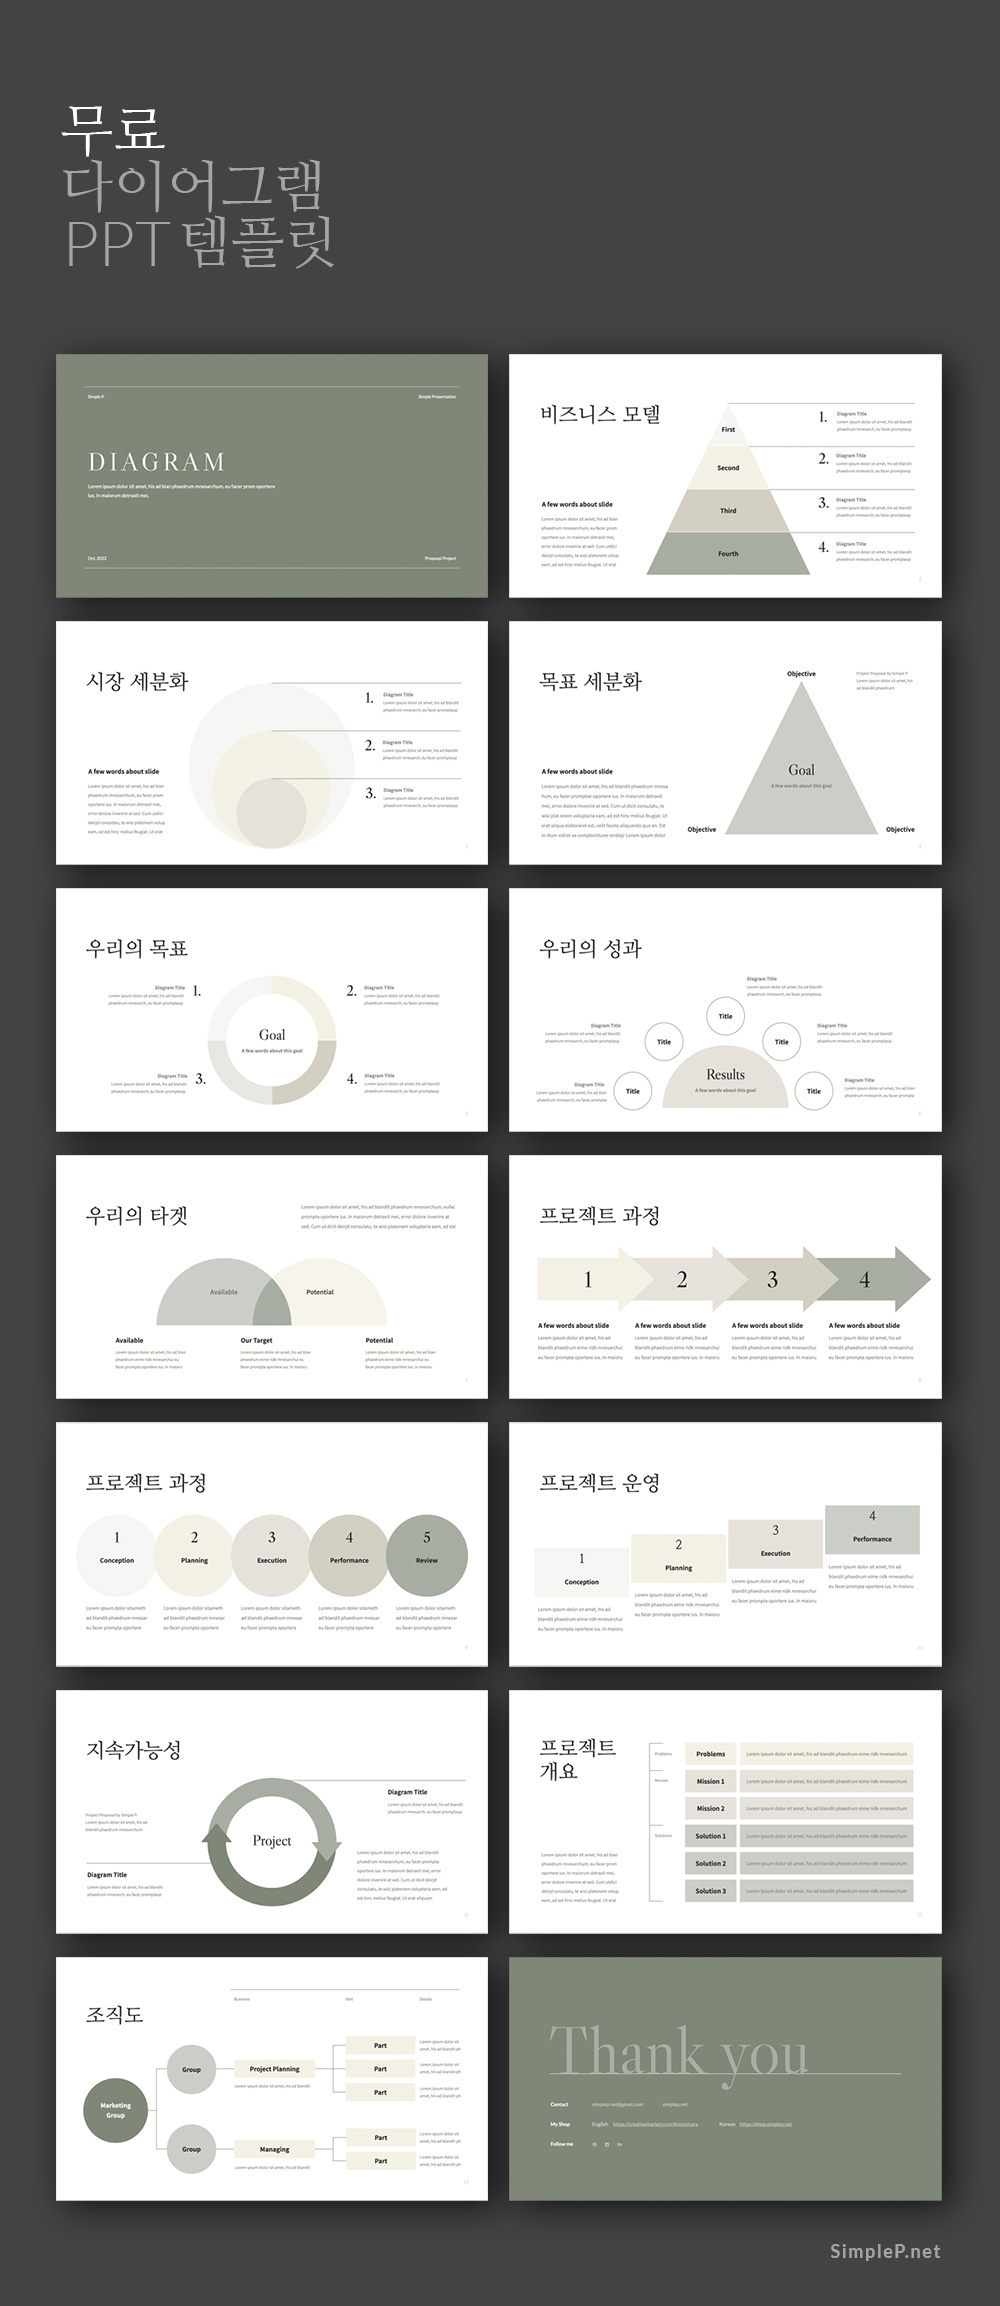 Proposal Free Diagram PPT Template